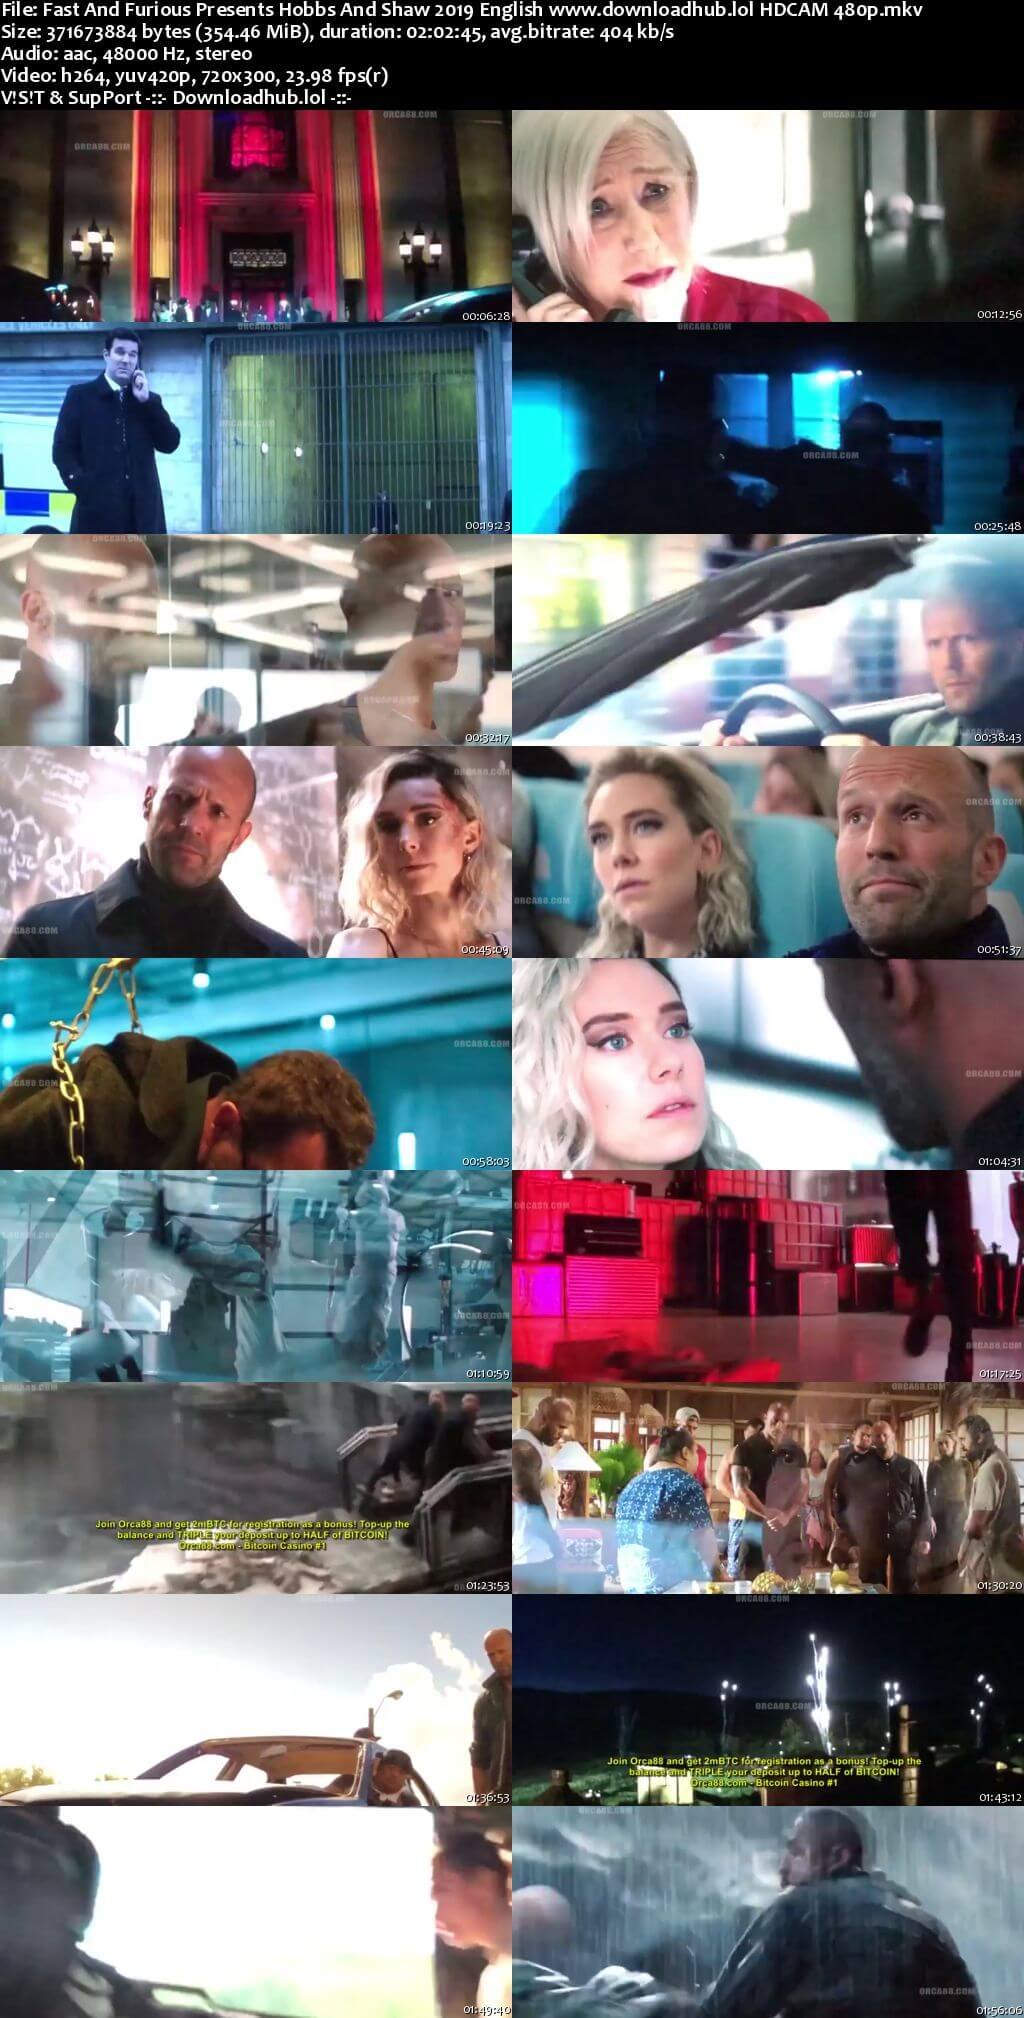 Fast And Furious Presents Hobbs And Shaw 2019 English 350MB HDCAM 480p